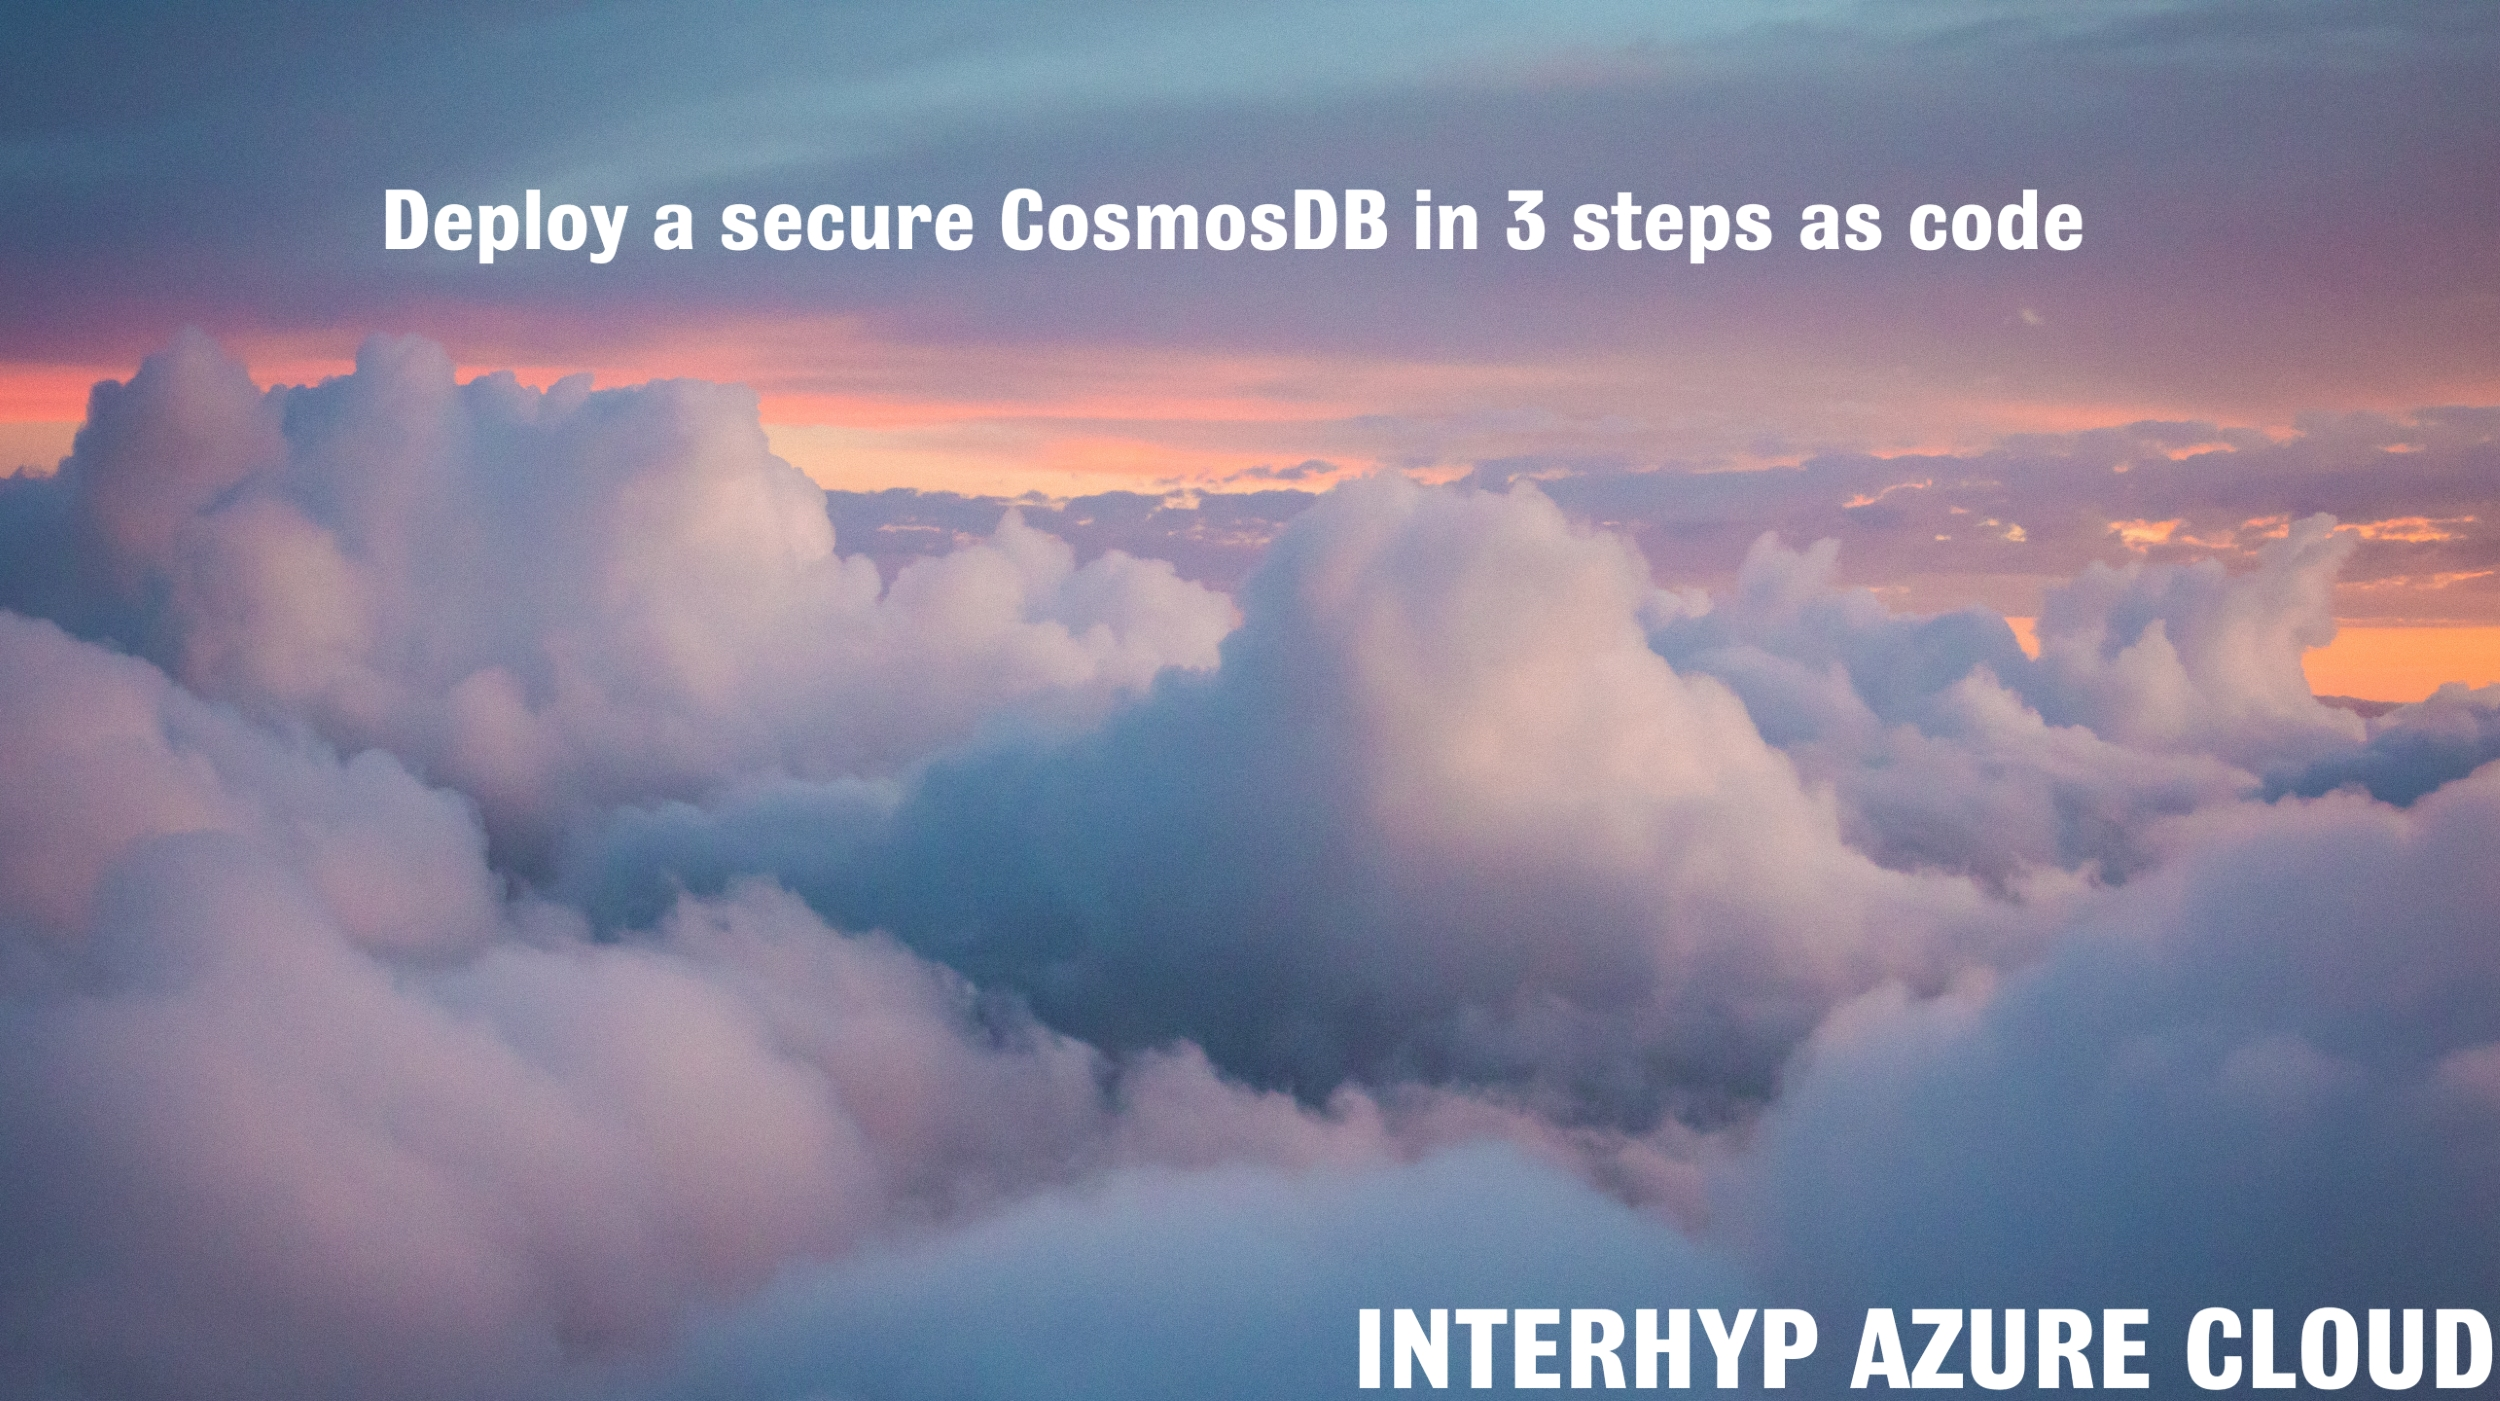 Three Simple Steps to Securely Scaffold and Deploy a CosmosDB Into Azure With Terraform